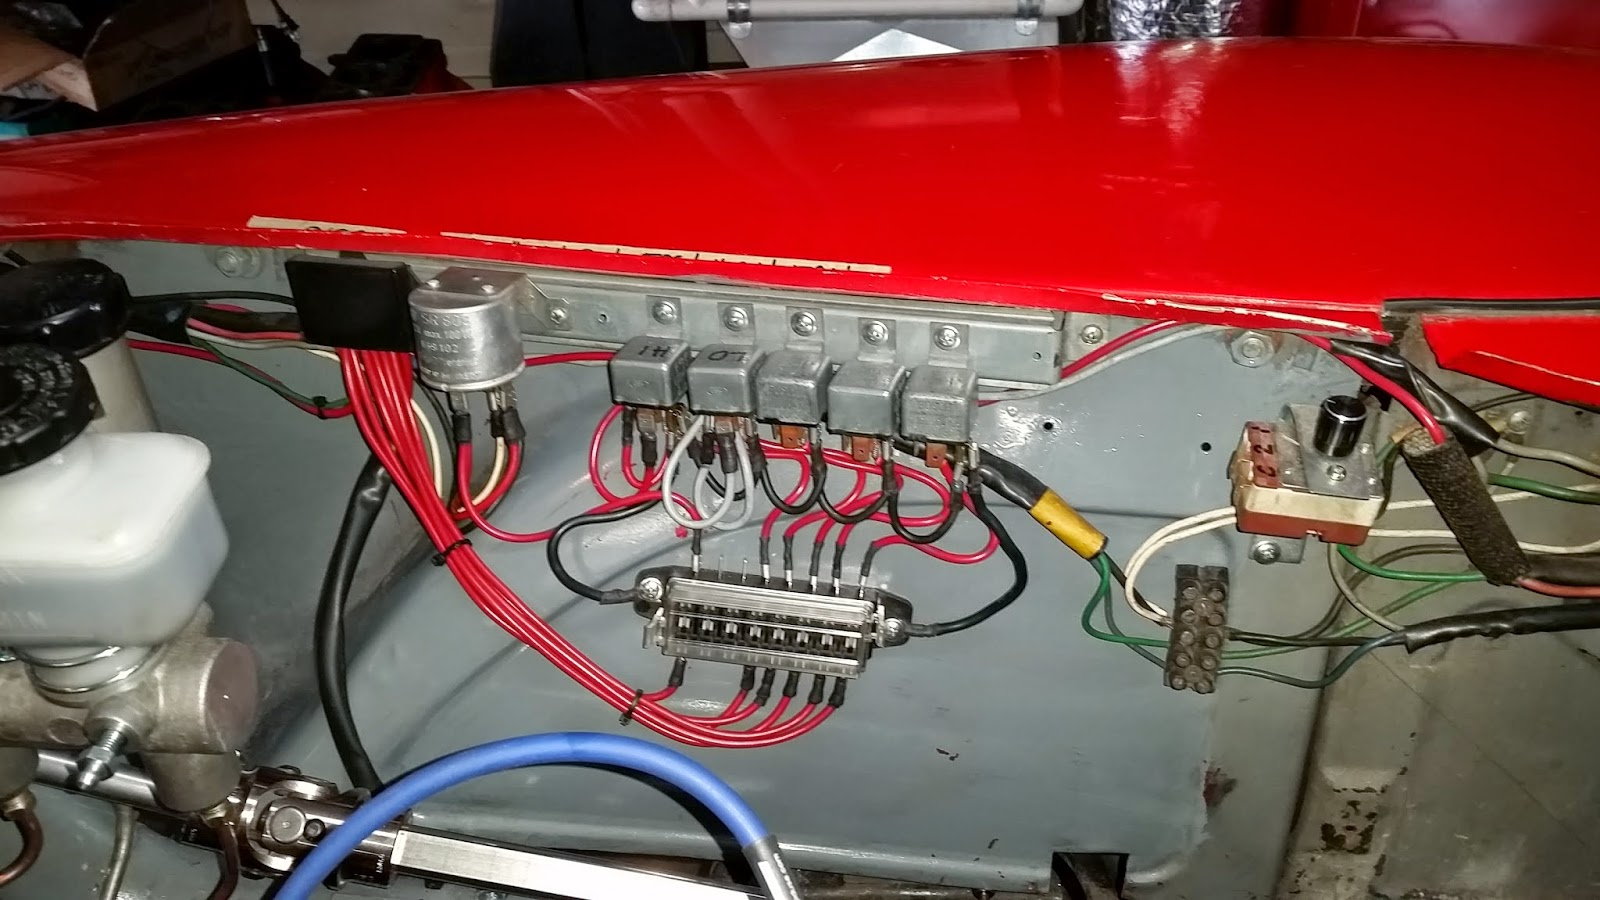 Crane Fireball Xr700 Ignition Wiring Diagram Electronic Swedishrelics Vintage Volvo Voodoo Getting Wired